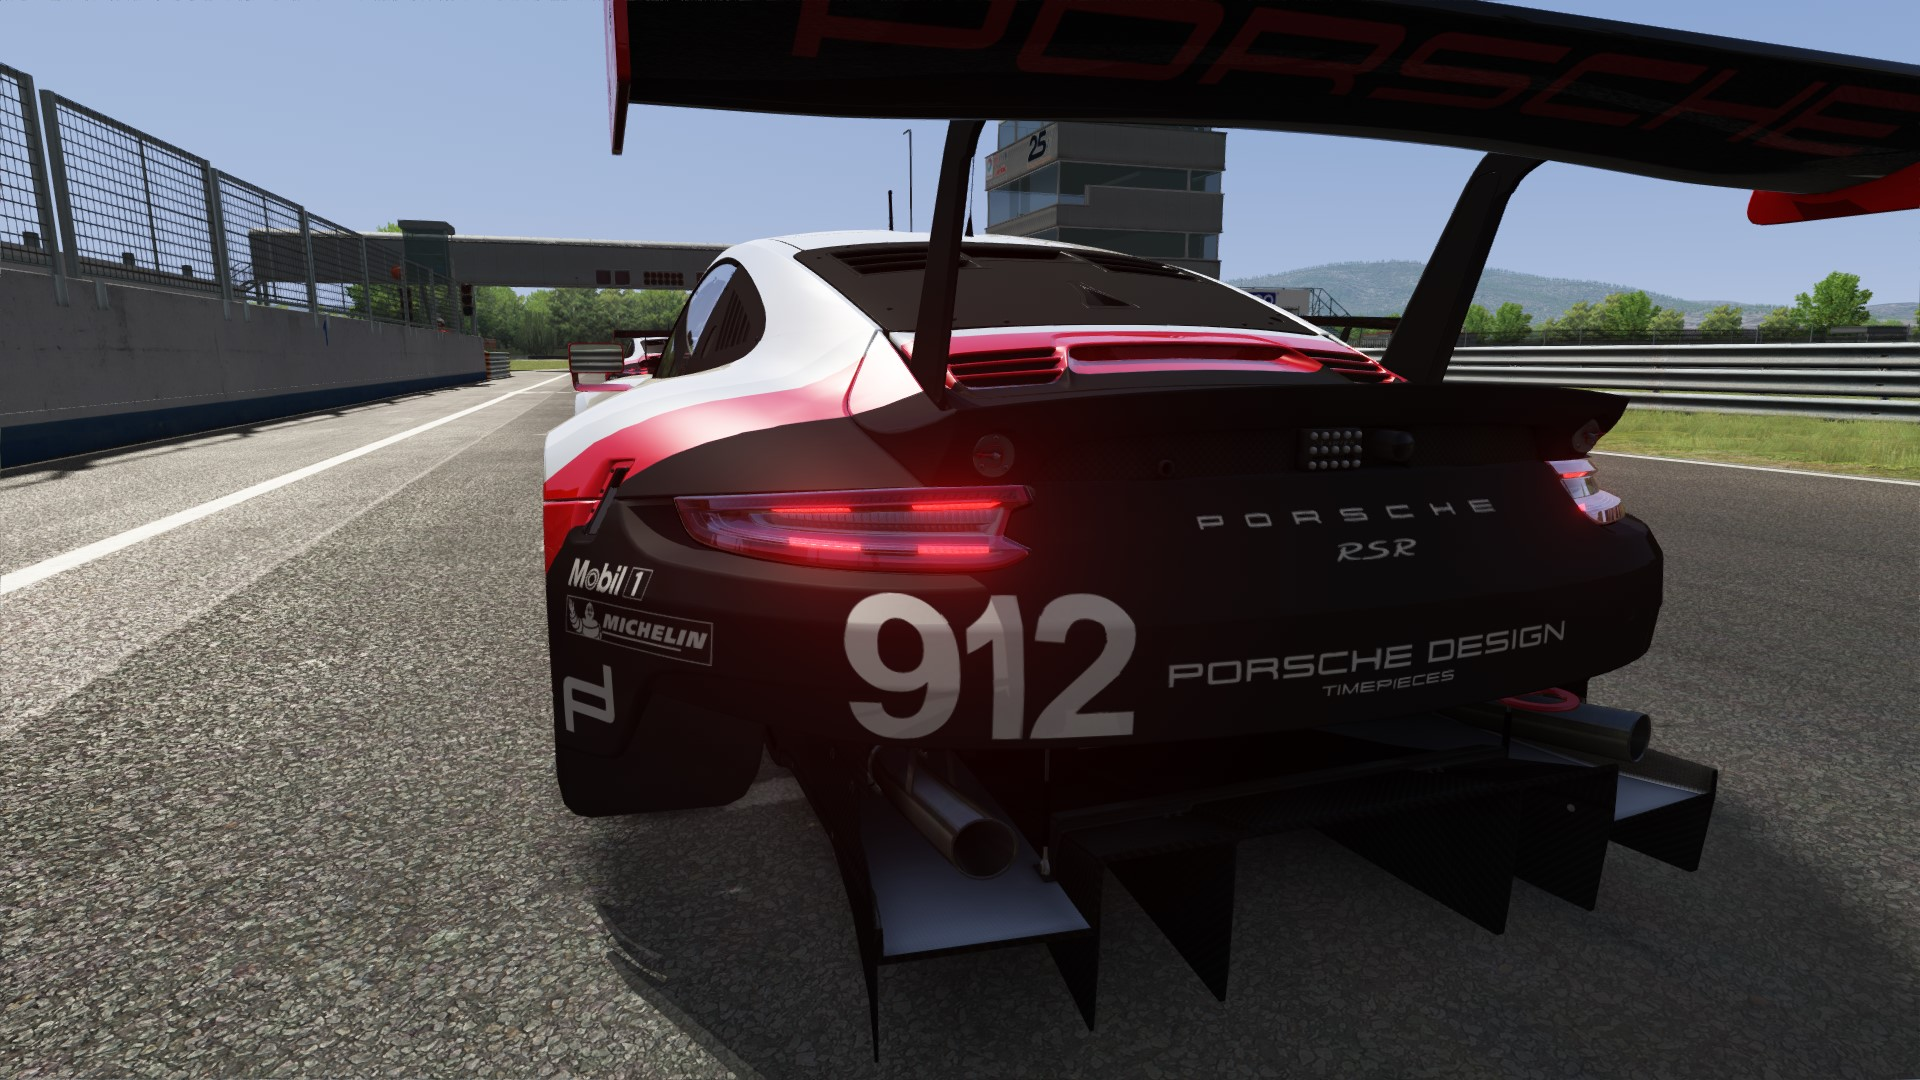 Screenshot_ks_porsche_911_rsr_2017_magione_23-3-117-22-54-34.jpg